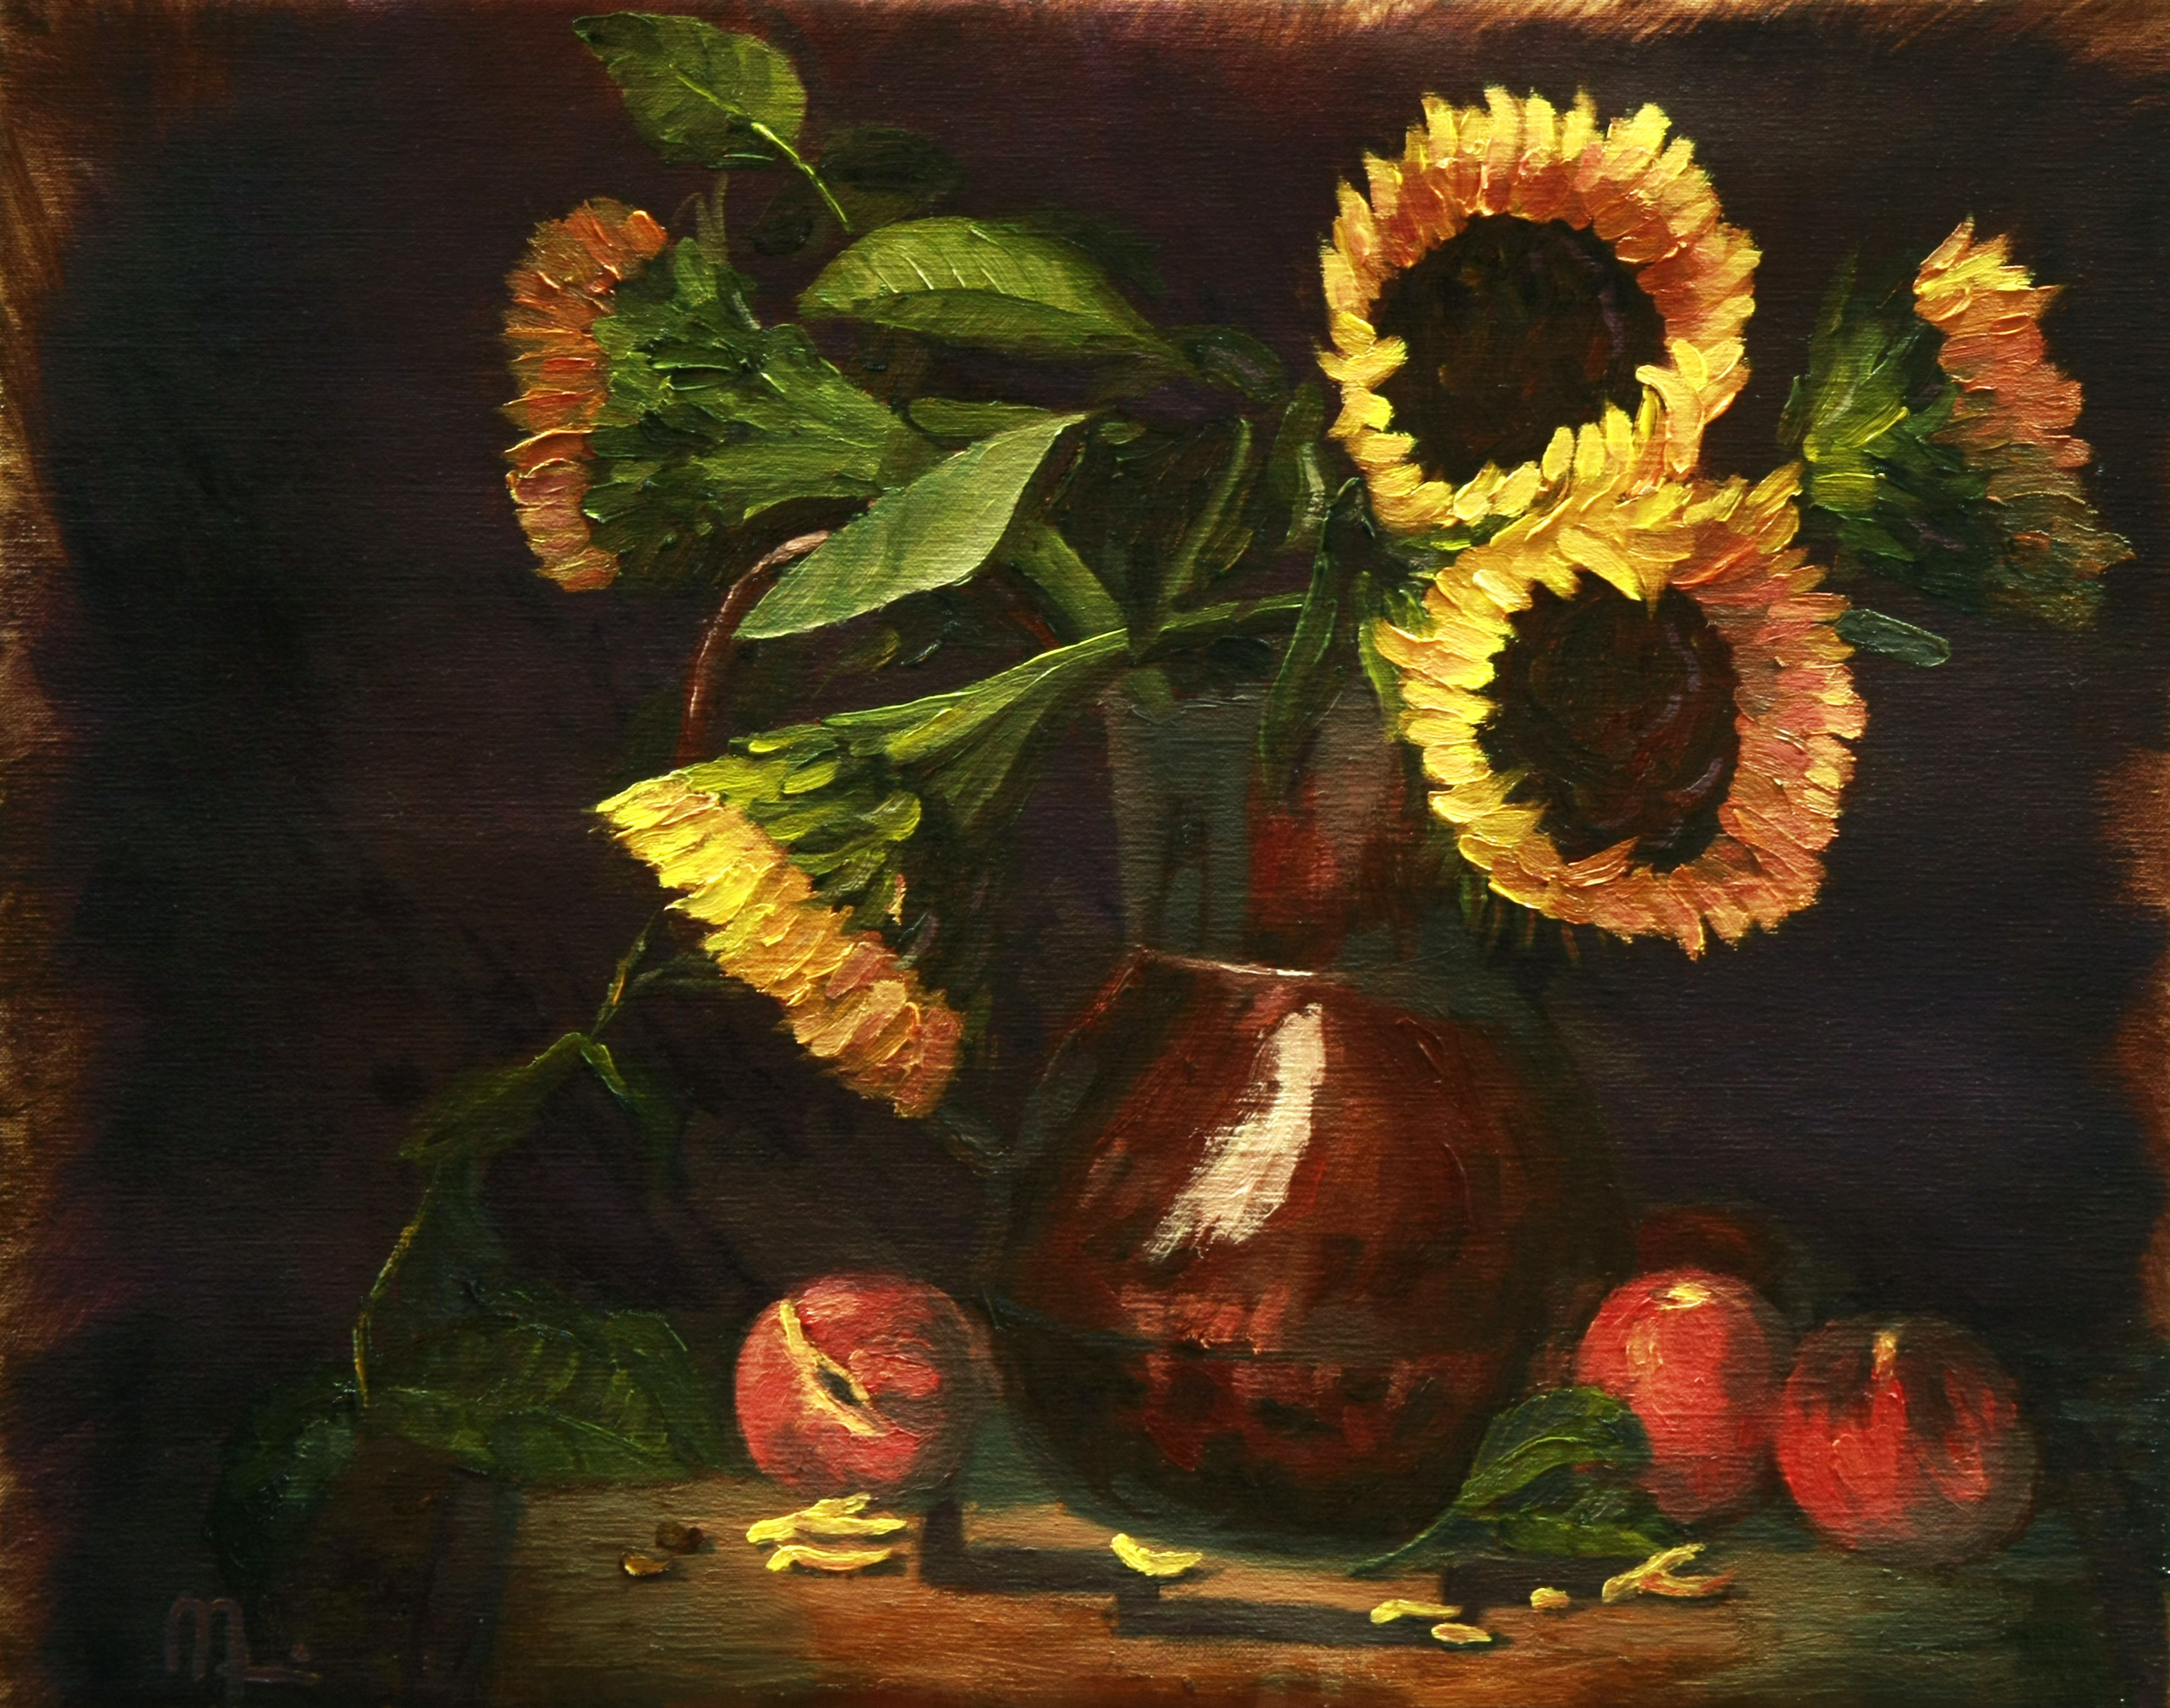 """20 x 16 Oil on Canvas """"Copper and Sun Flowers"""" - Still Life - JL Morris"""